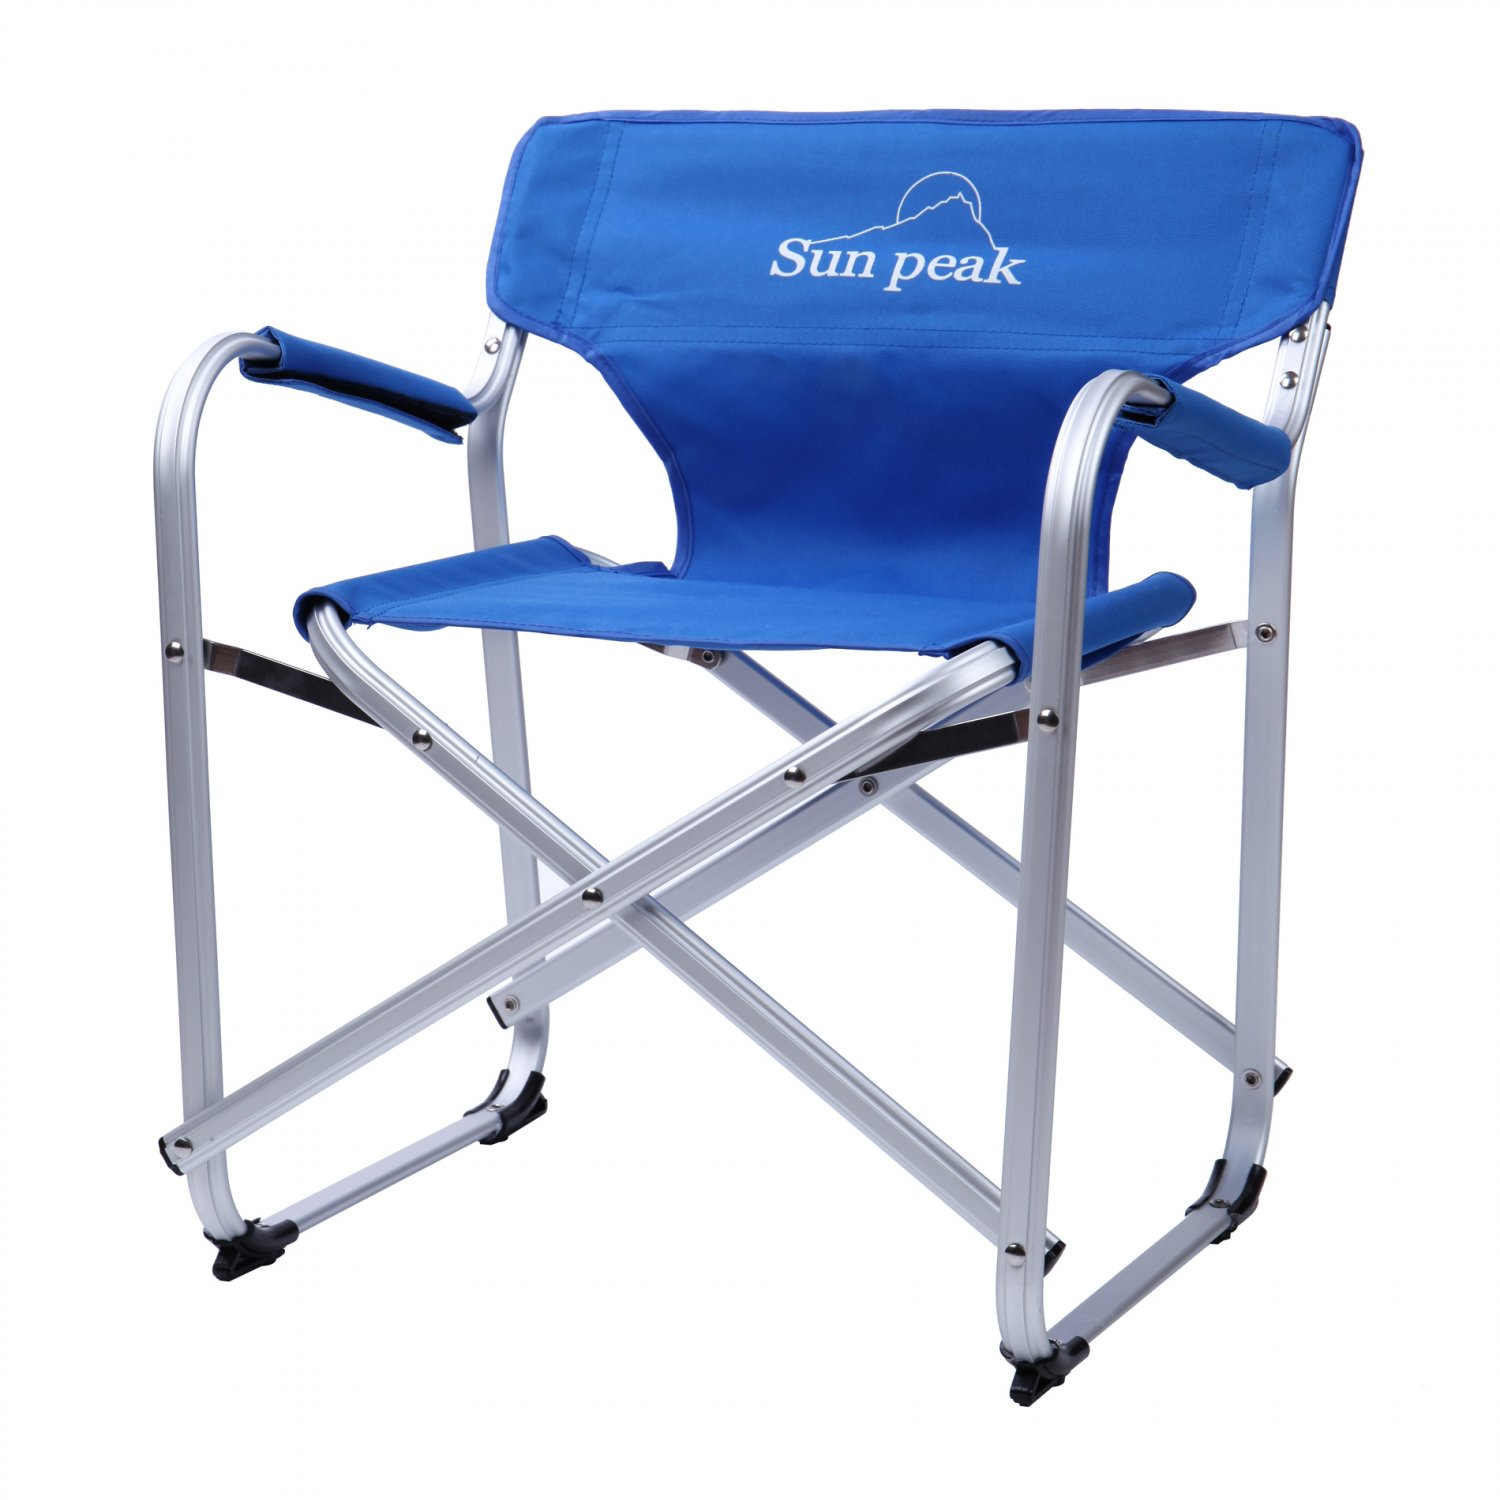 Lightweight Mini Portable Folding Chair Camping Seat W/ Carry Bag Blue(Ship US Only)SK-17143-BL{4}